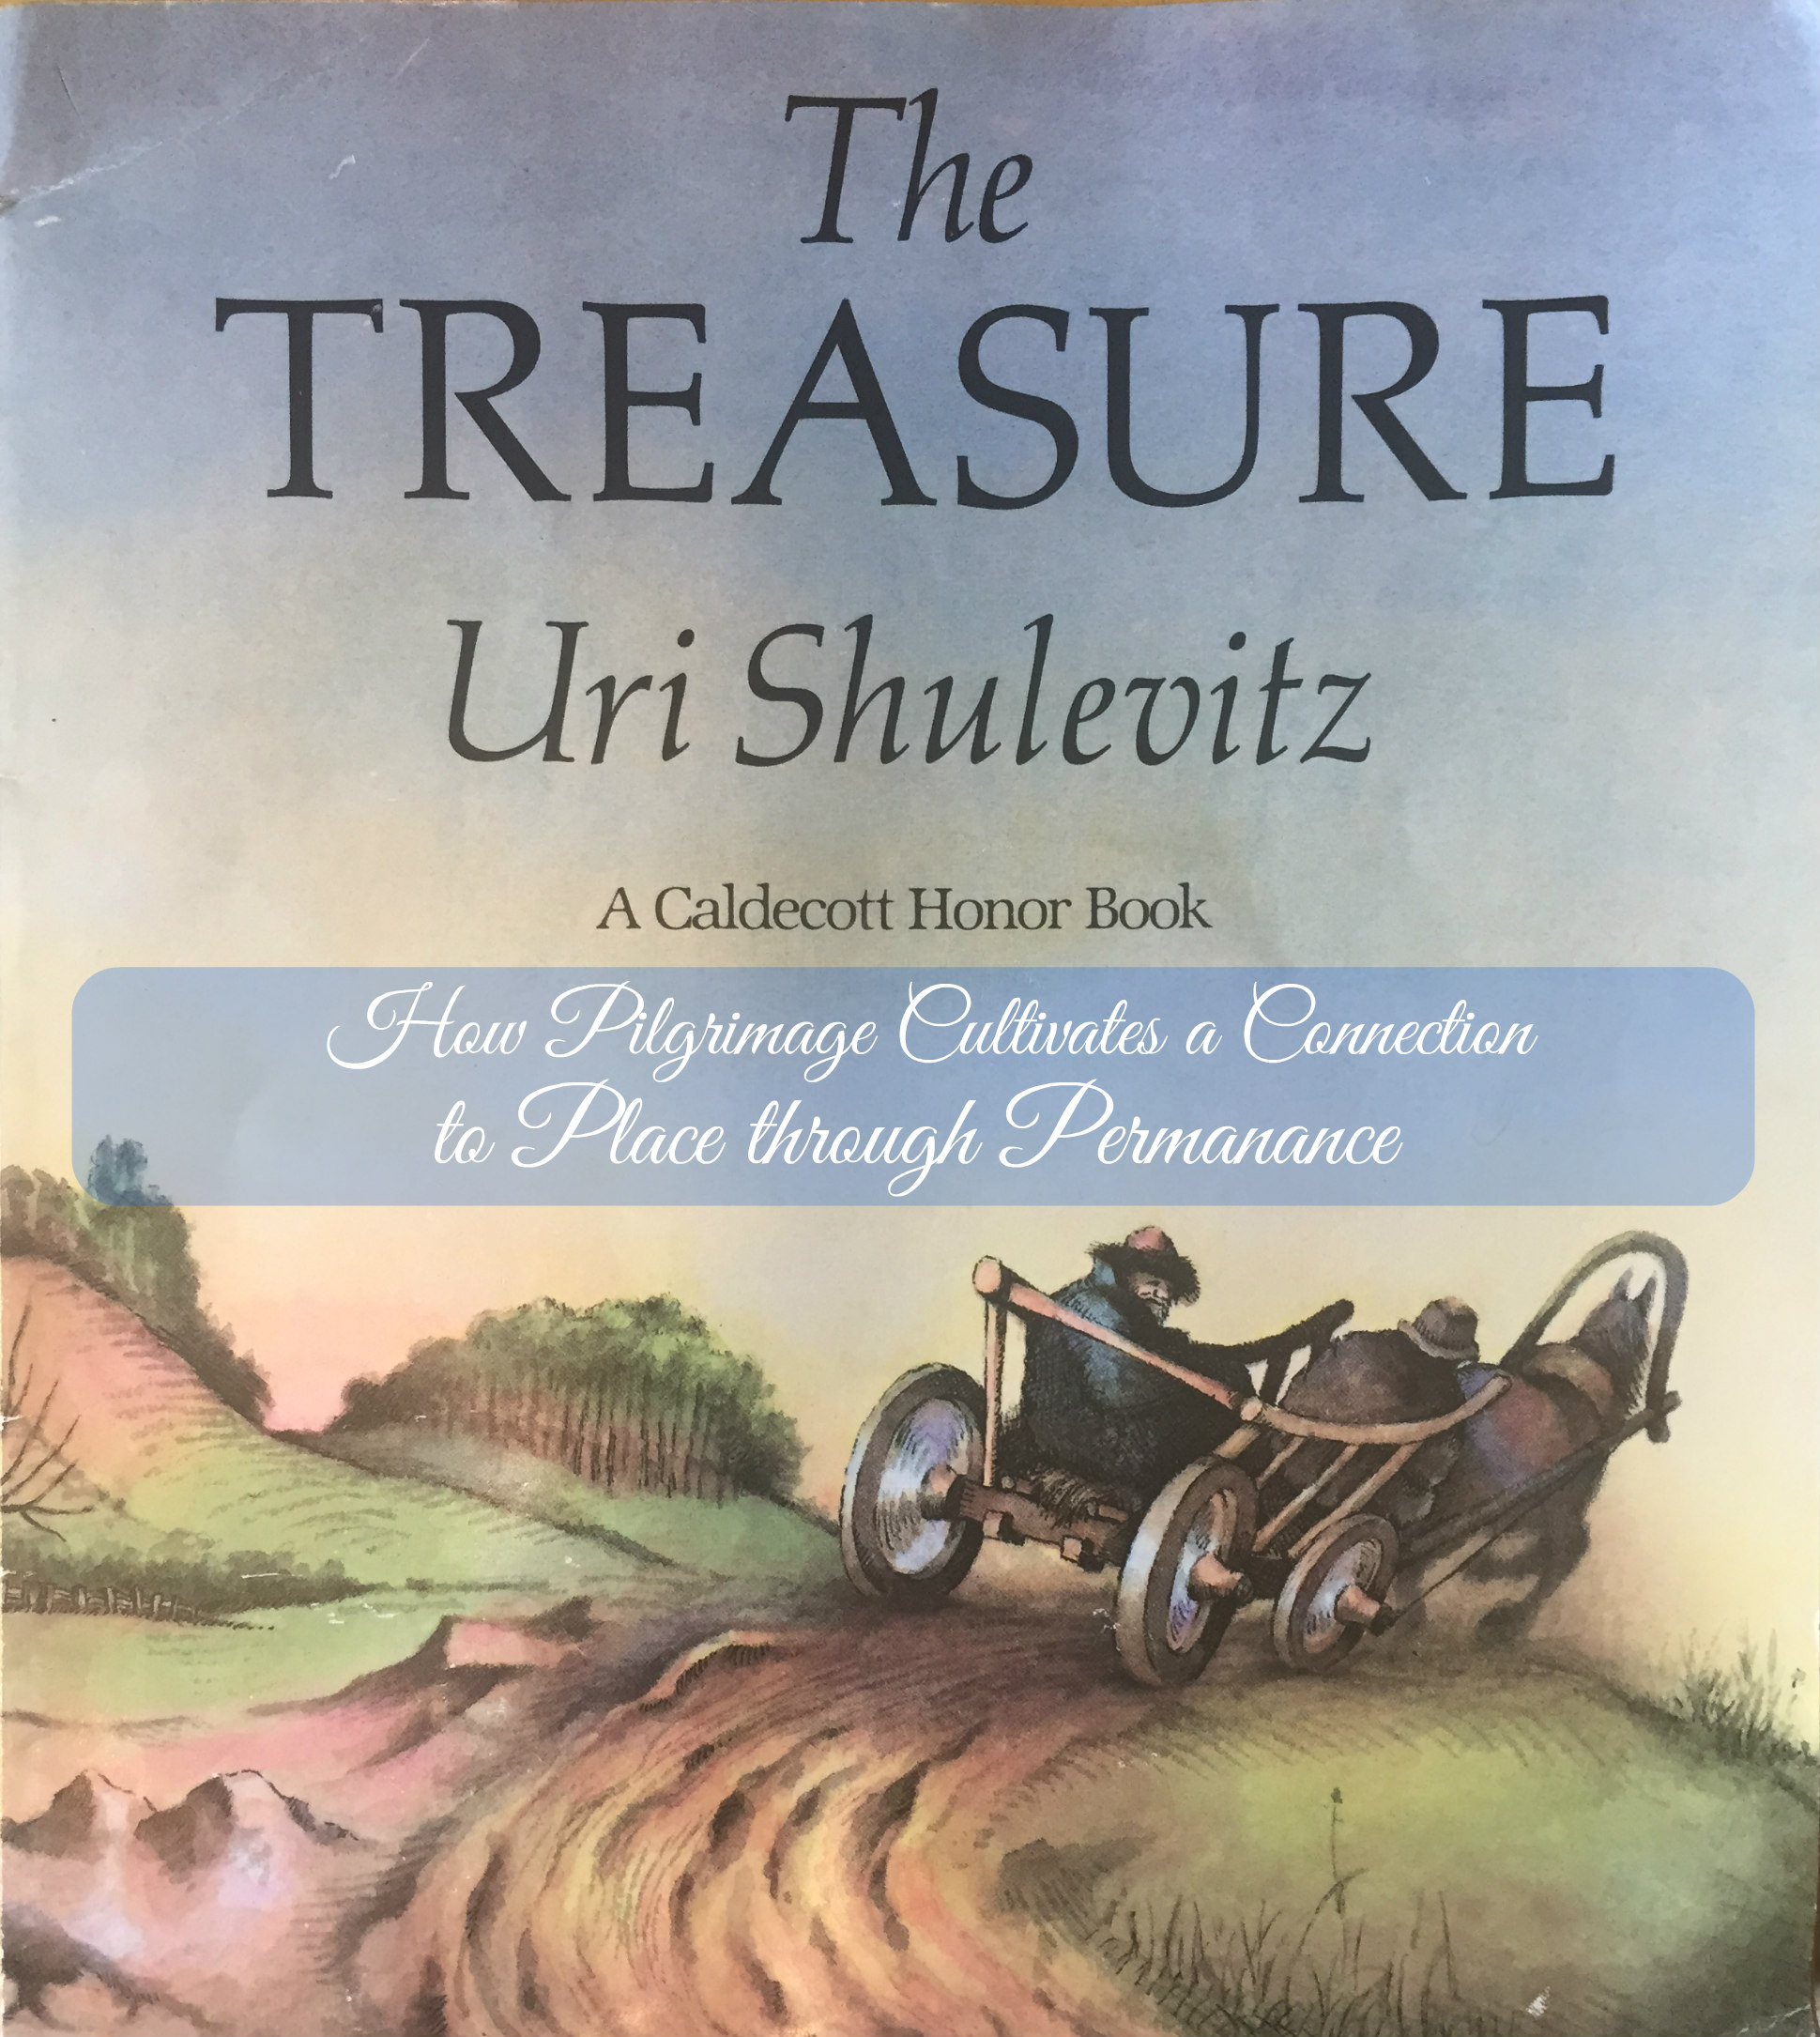 The Treasure: How Pilgrimage Cultivates a Connection to Place Through permanence